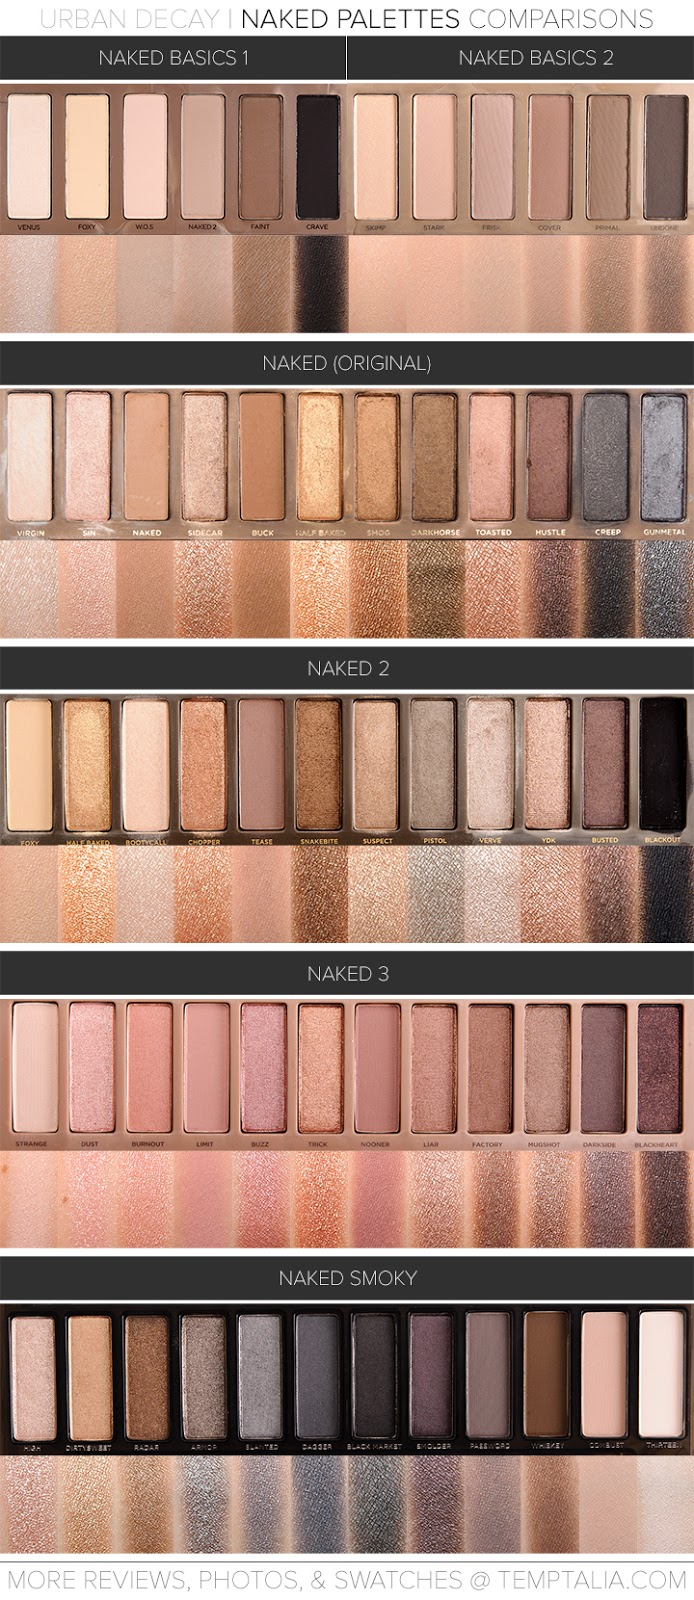 Swatches / Amostras de todas as paletas Naked Urban Decay, Naked Smoky